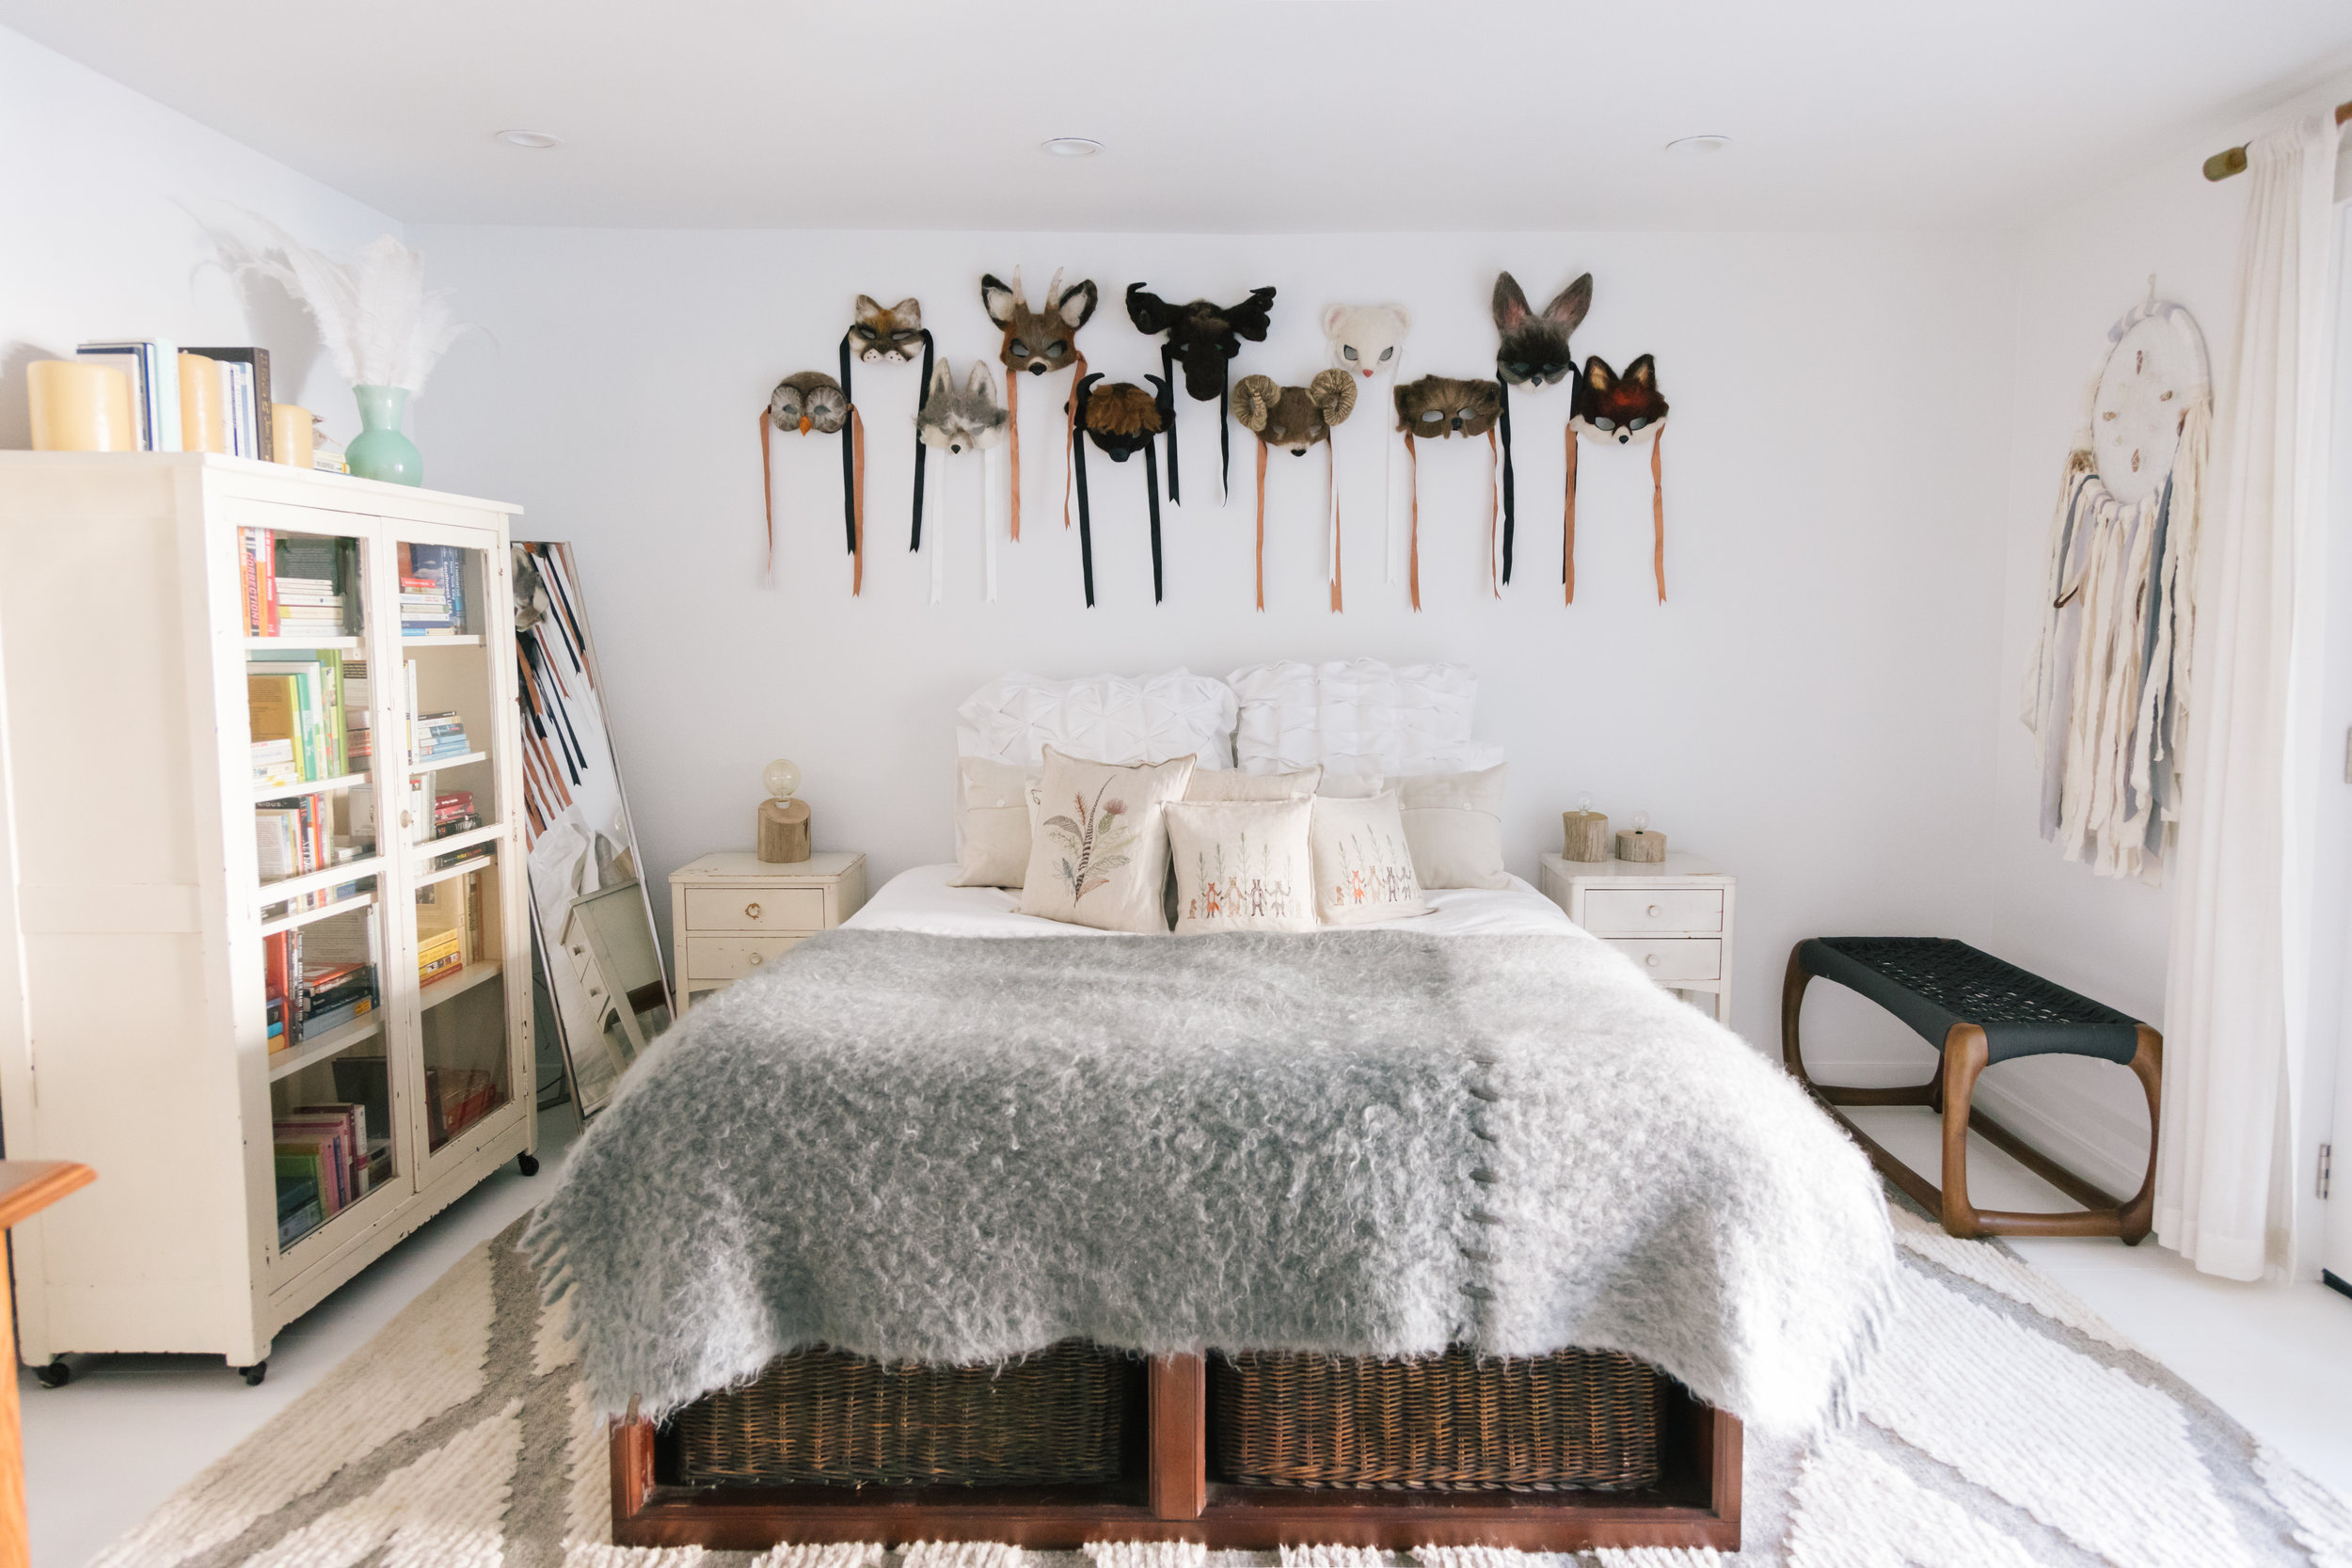 Animal Masks, Wild Wallpaper, and Patterns Galore: Inside a Jewelry Designer's Eclectic San Francisco Home - VOGUE  Photo: Jen Kay / Courtesy of Emily Wheeler